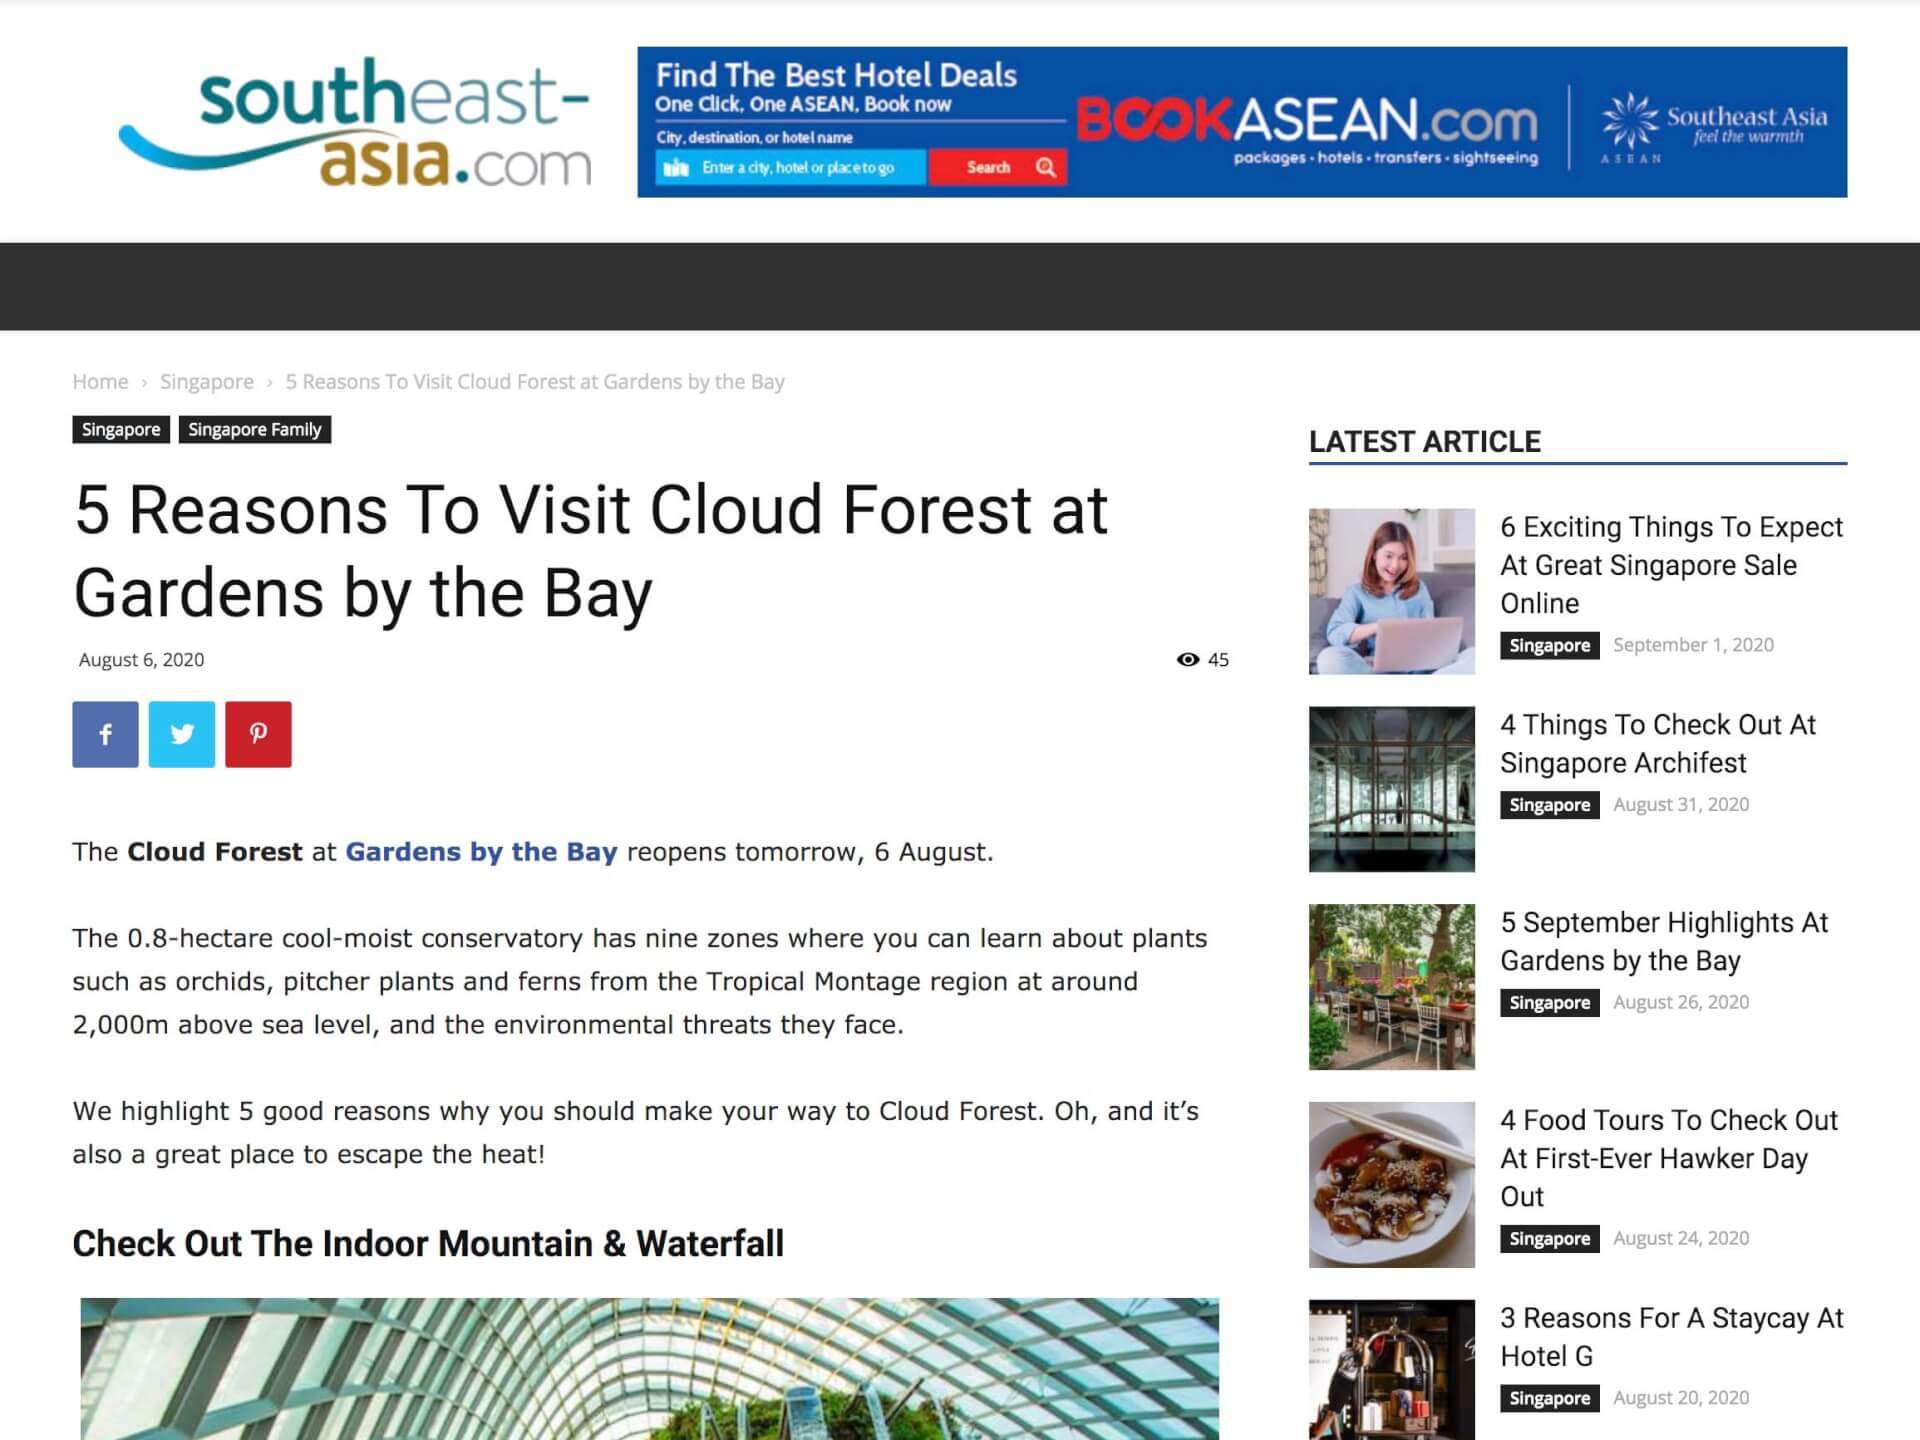 5 Reasons To Visit Cloud Forest at Gardens by the Bay